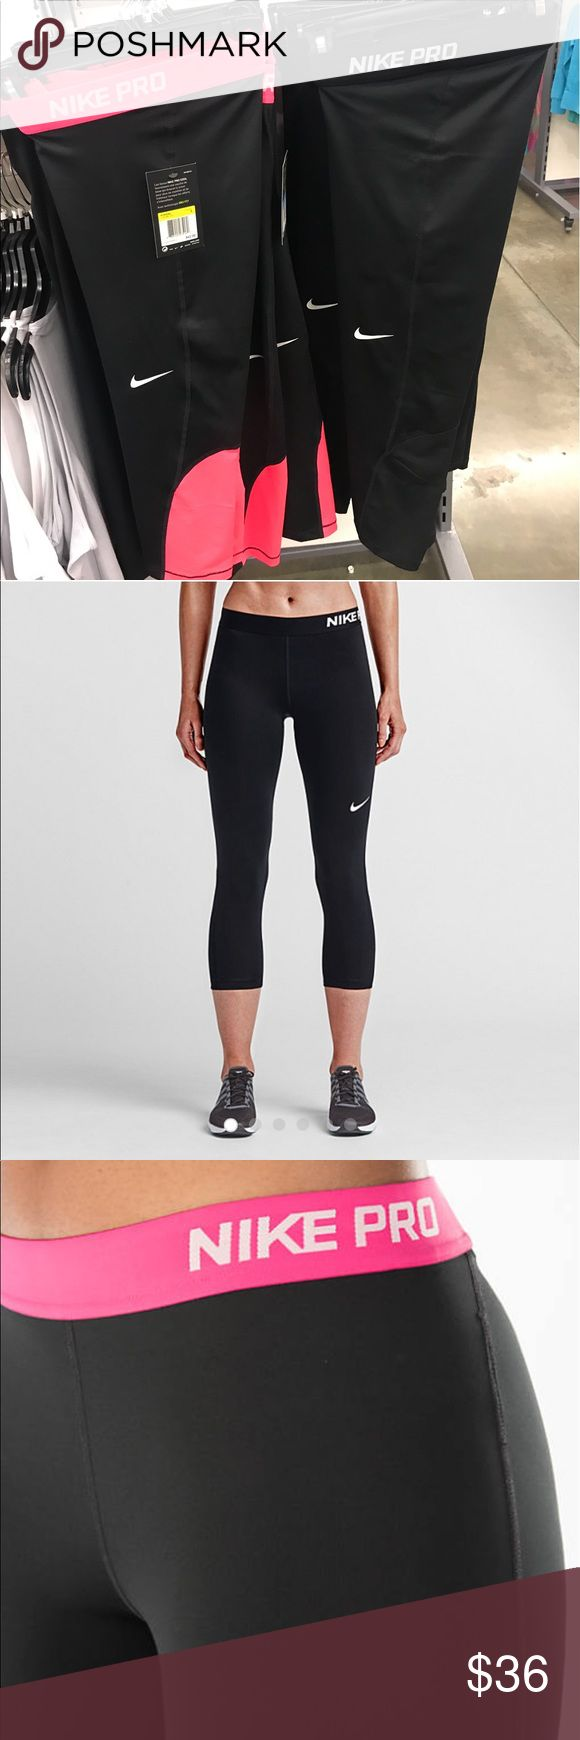 NWT💕Nike💕Women's Pro Training Capris drift See above description ⬆️ these are brand new with tags. I have both pink and black, and all black. Super comfy and cool mesh design behind the knees! Please check out my other listings and ratings as all are PHENOMENAL 👍🏼😍💋 please let me know what pair you are bidding on 🤗🌈 Nike Pants Capris